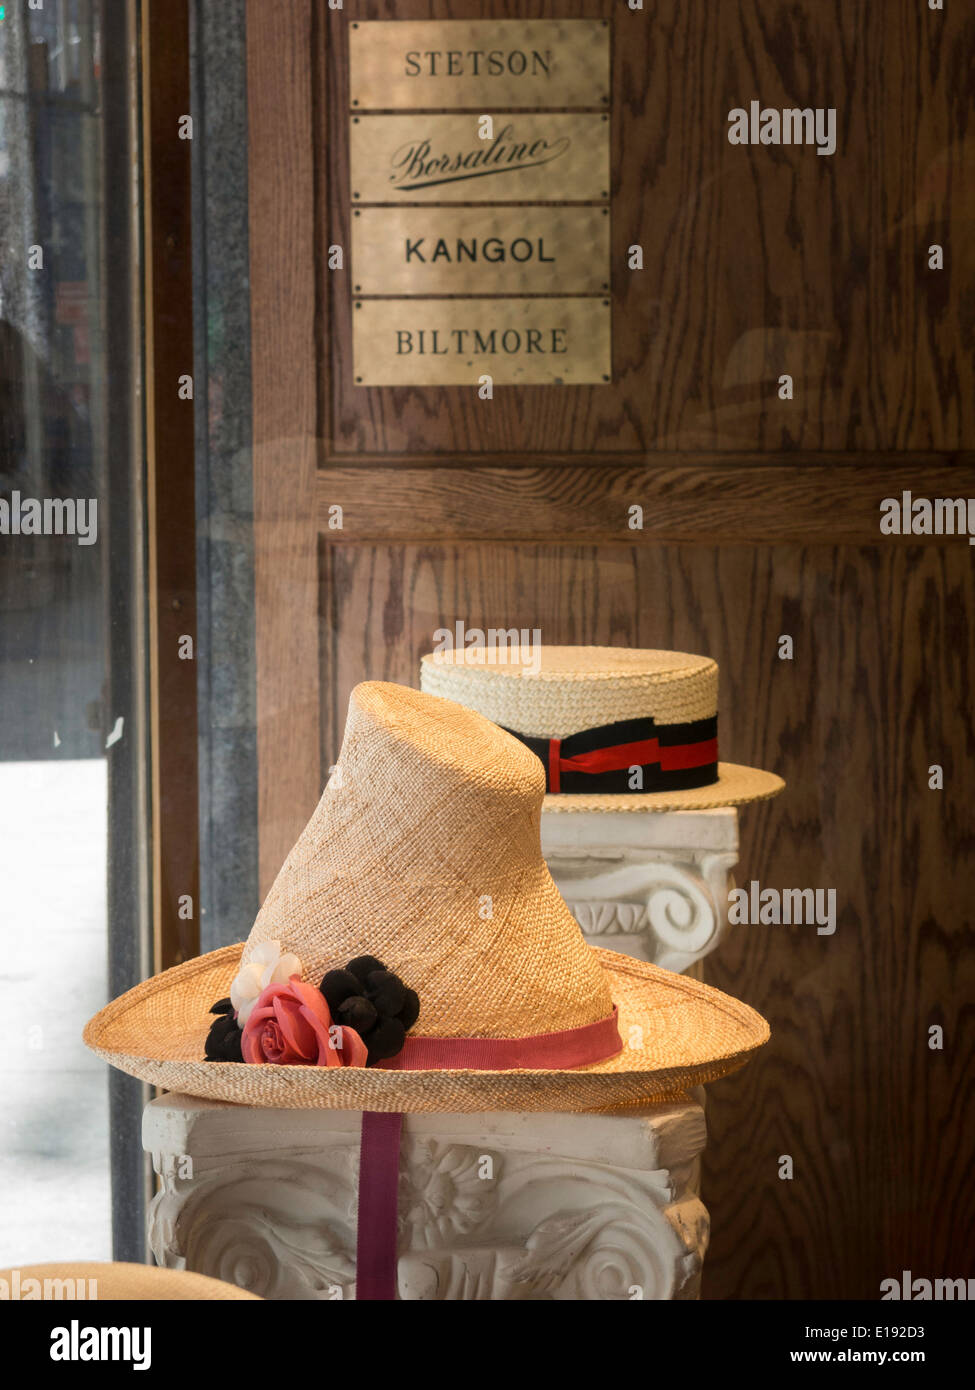 Borsalino Shop Imágenes De Stock   Borsalino Shop Fotos De Stock - Alamy da195581d2b